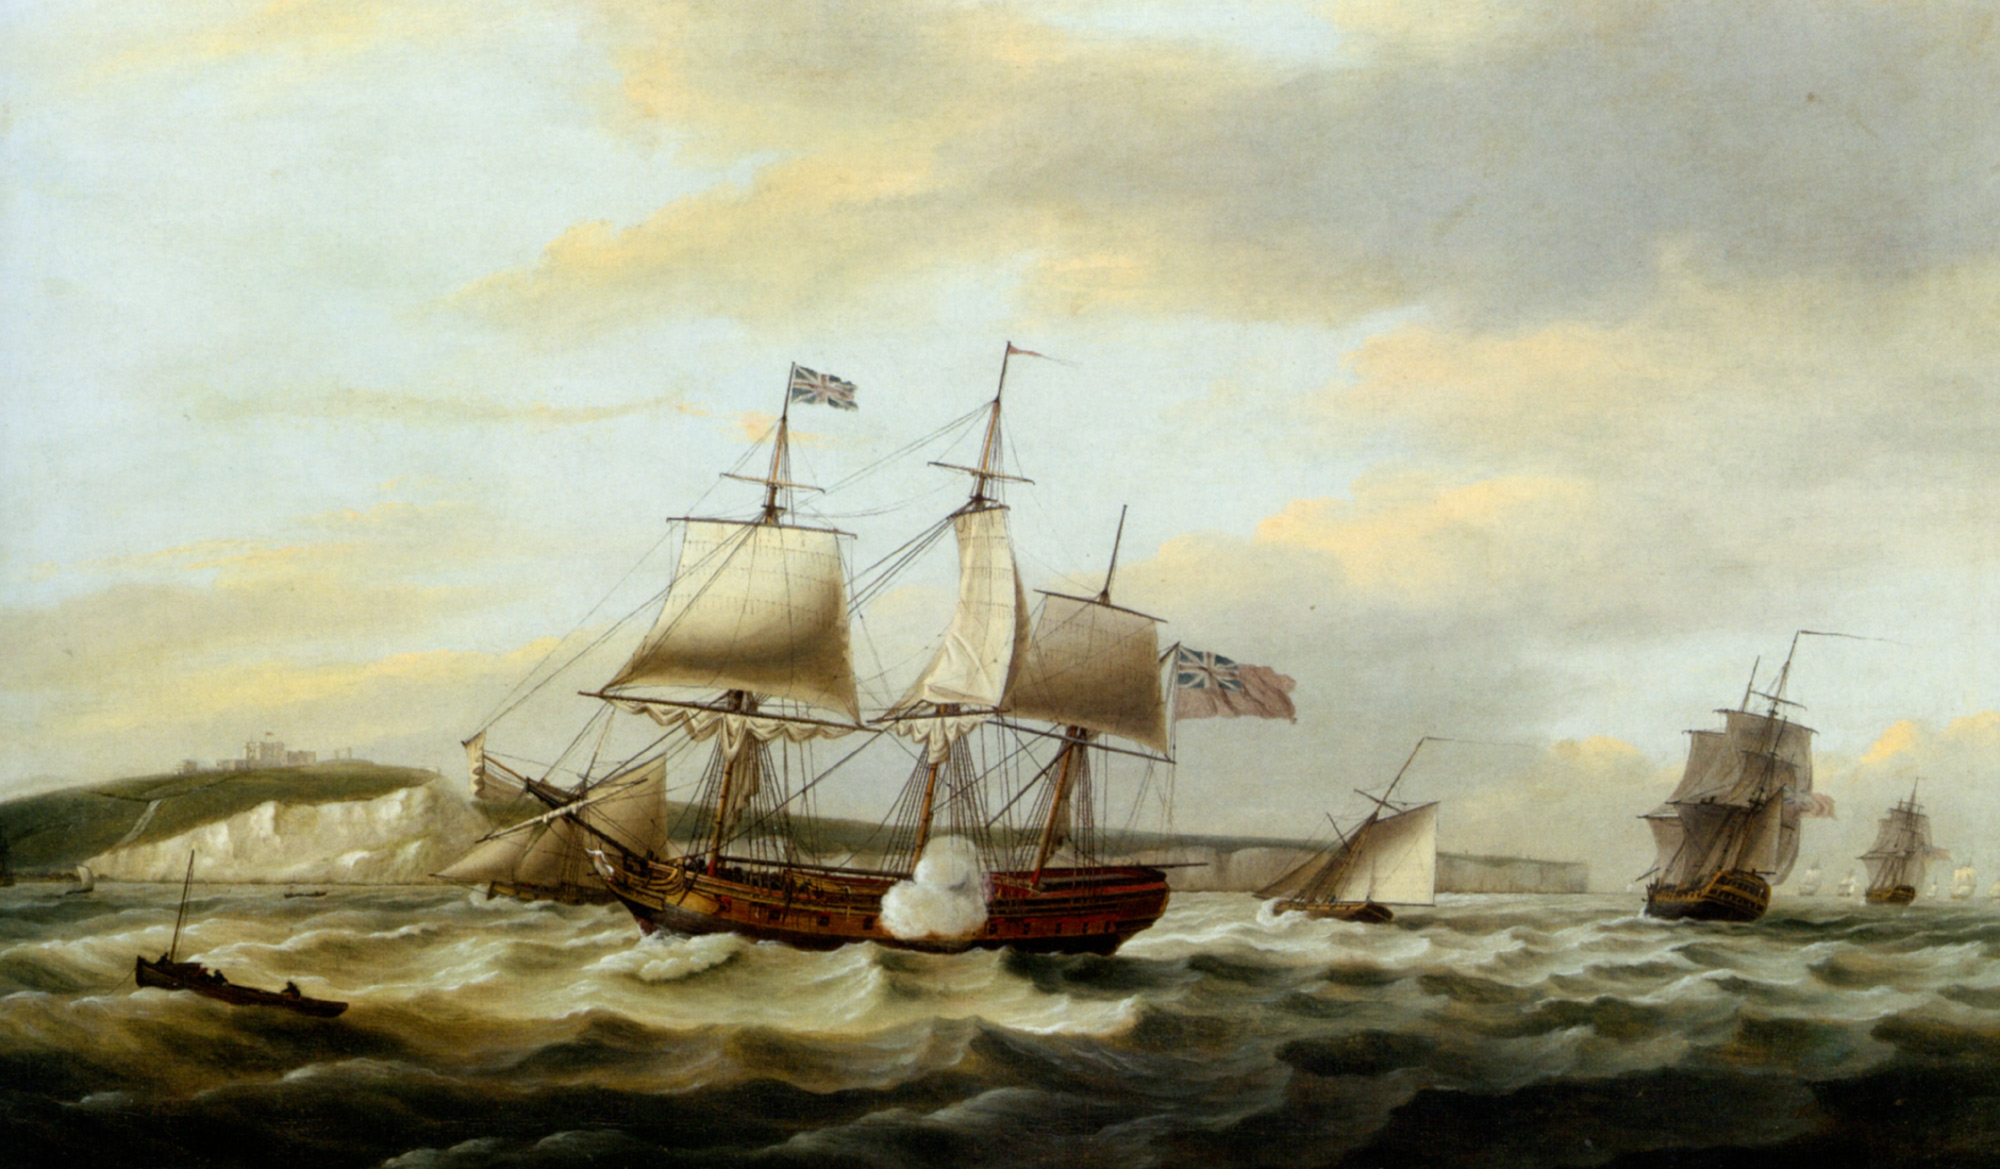 A Merchant Ship Signaling for a Pilot of the Cliffs of Dover :: Thomas Luny - Sea landscapes with ships ôîòî